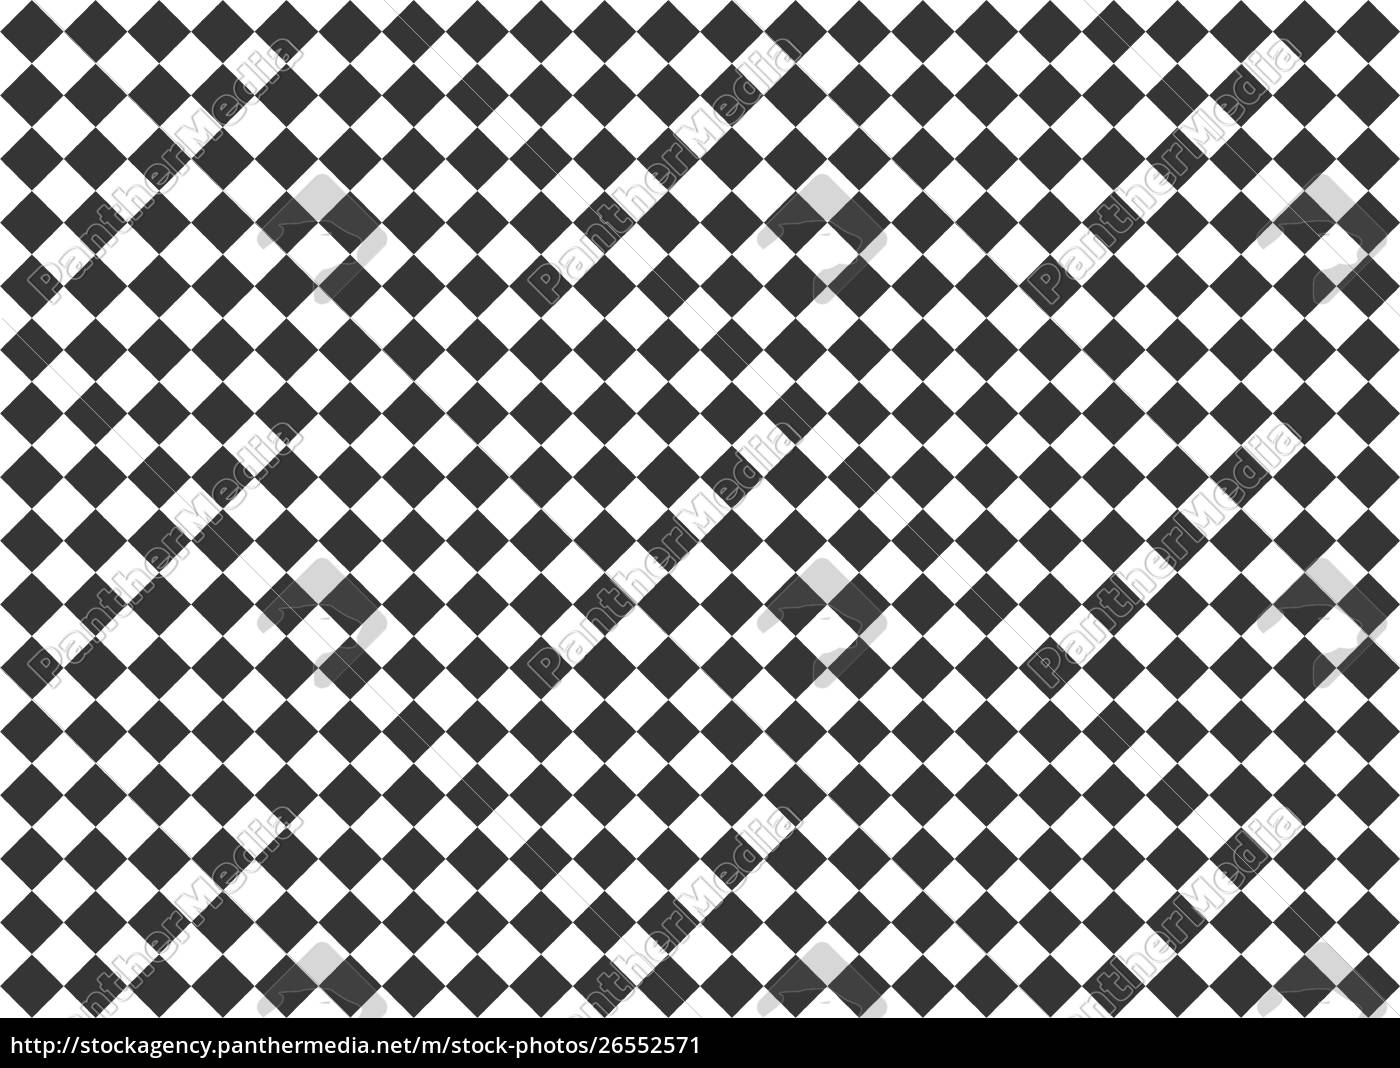 Black And White Checkered Background Texture Royalty Free Image 26552571 Panthermedia Stock Agency